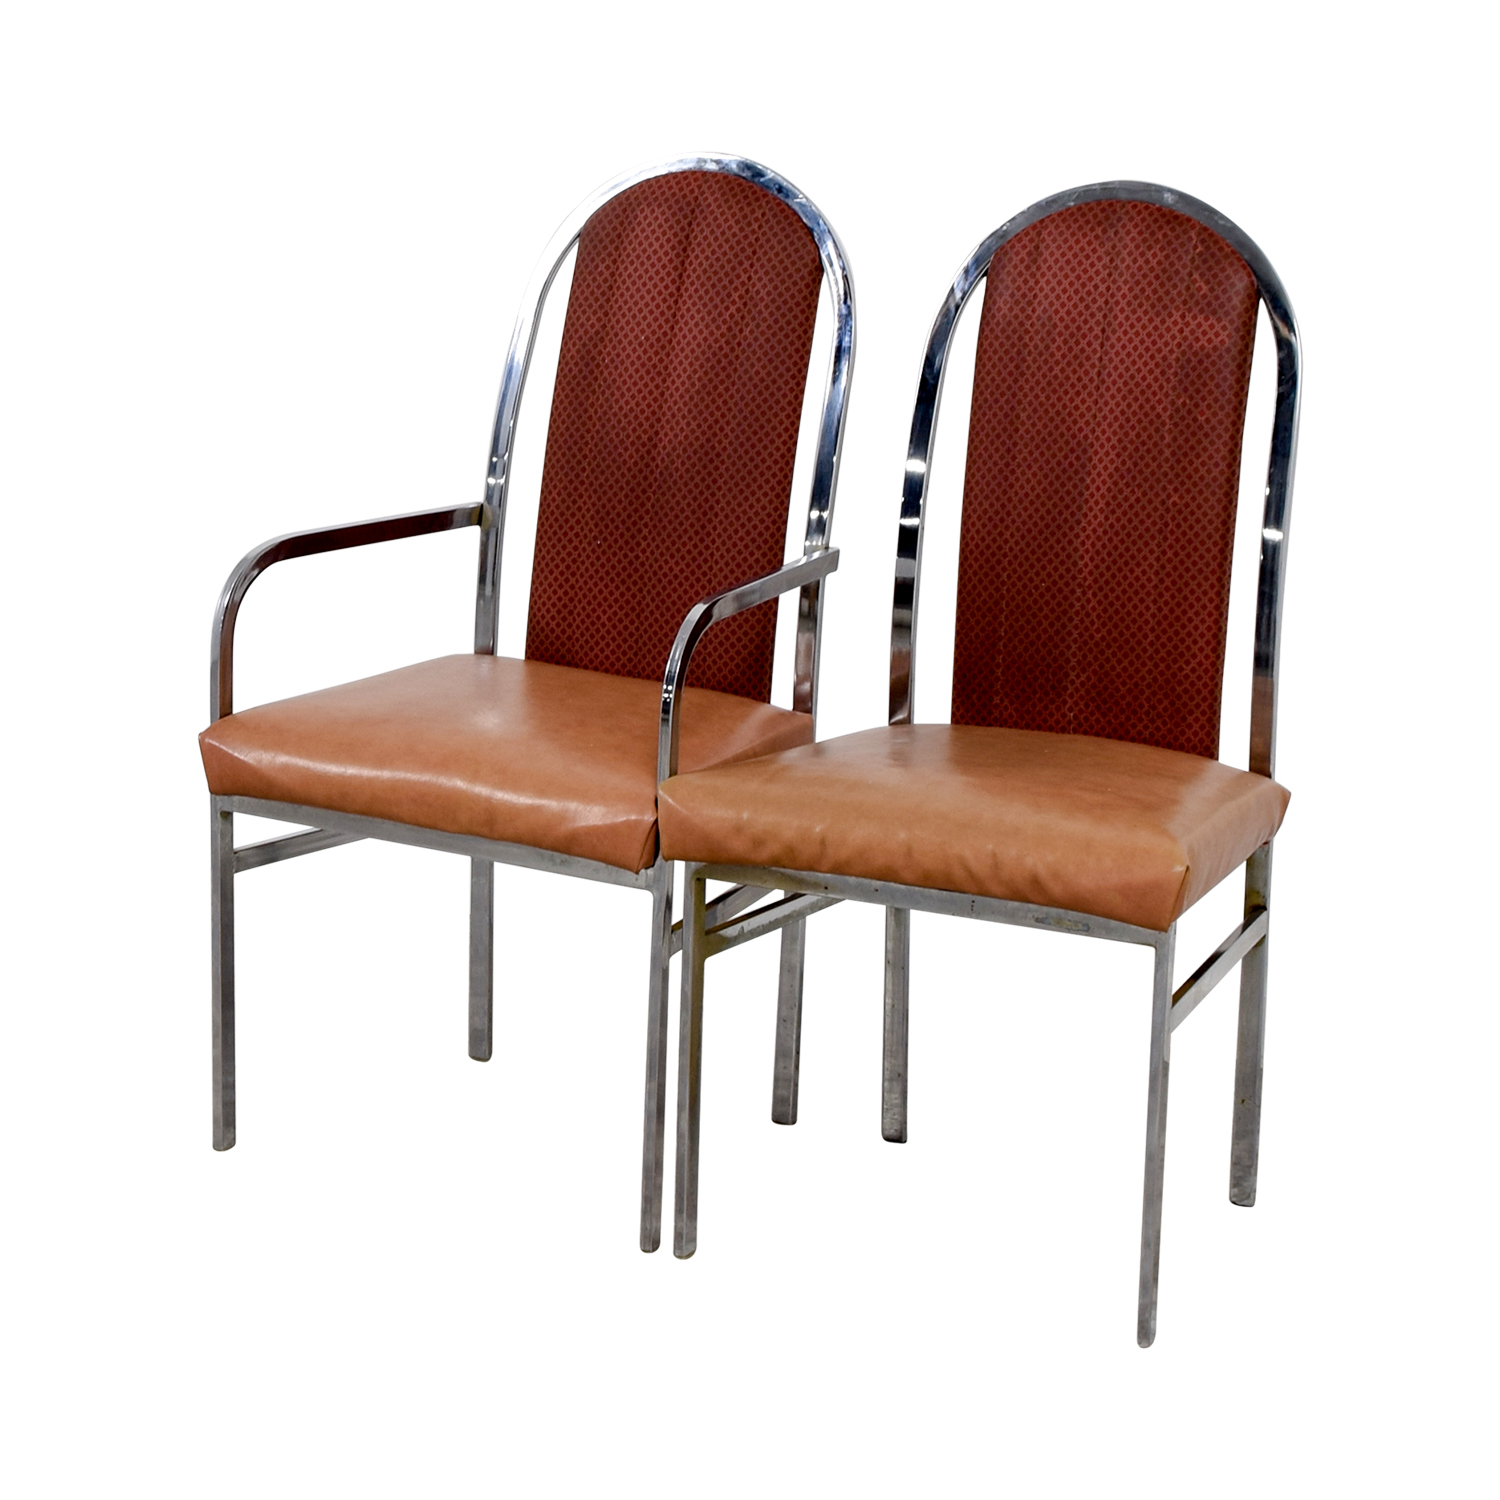 Peach Leather and Chrome Dining Chairs discount